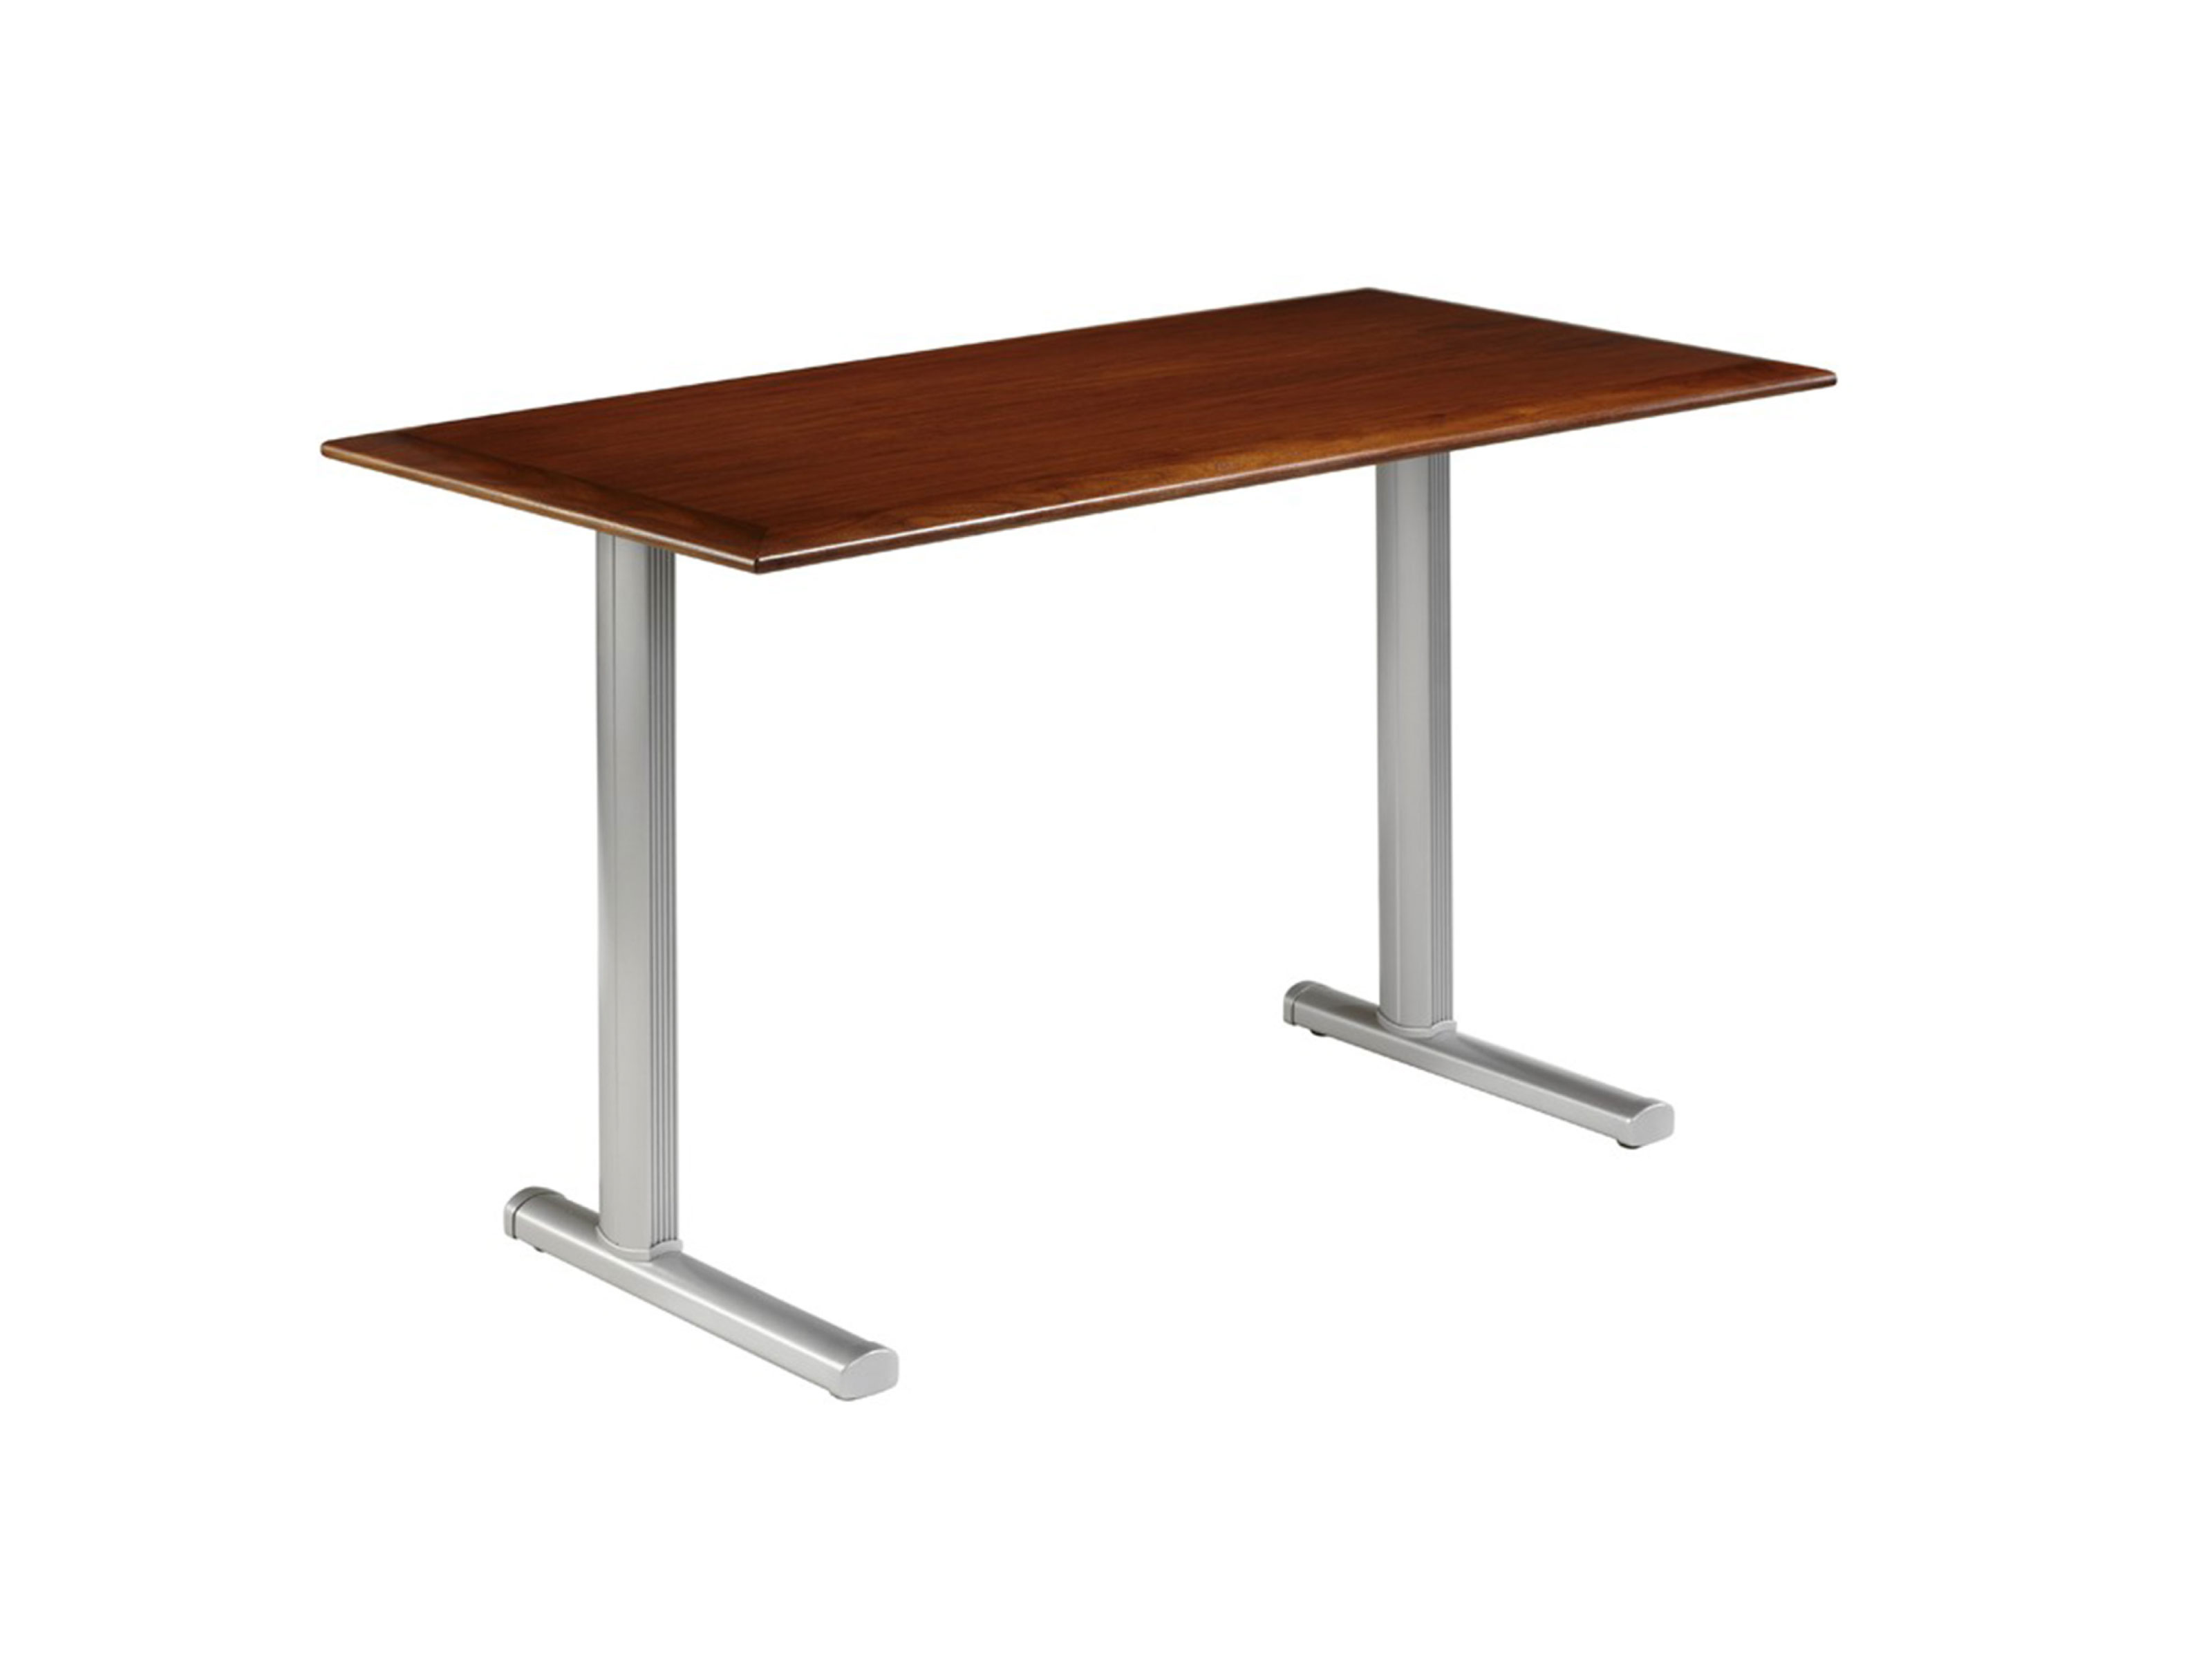 Modular Runner Tables By Coalesse Steelcase